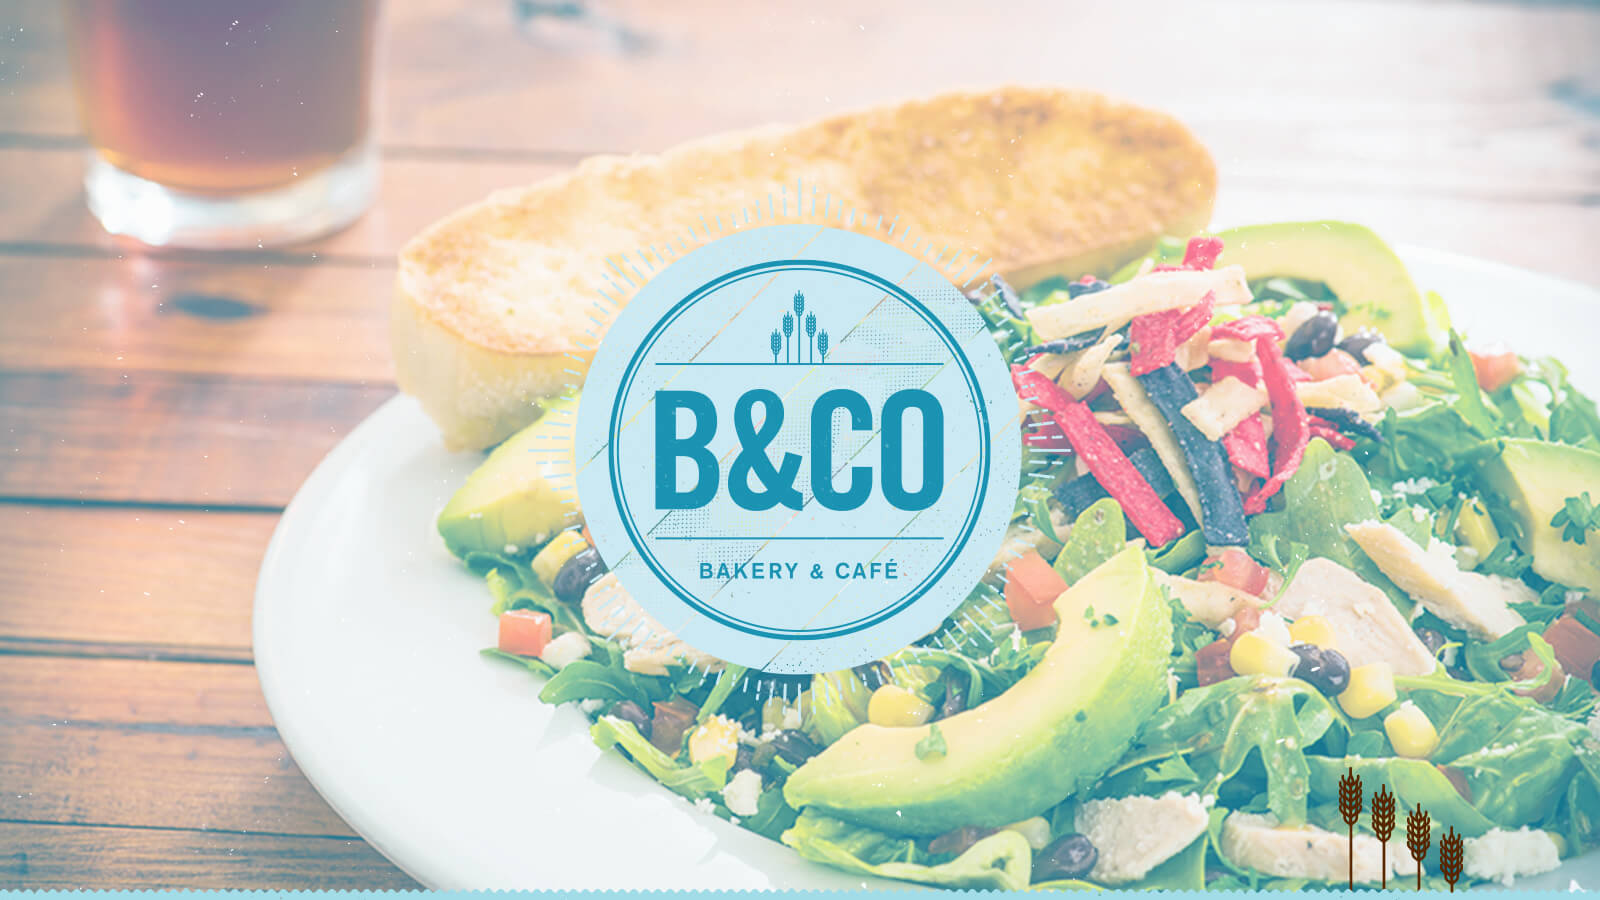 Bread and Company Bakery & Cafe feature photo for their website design by Ben Fieker